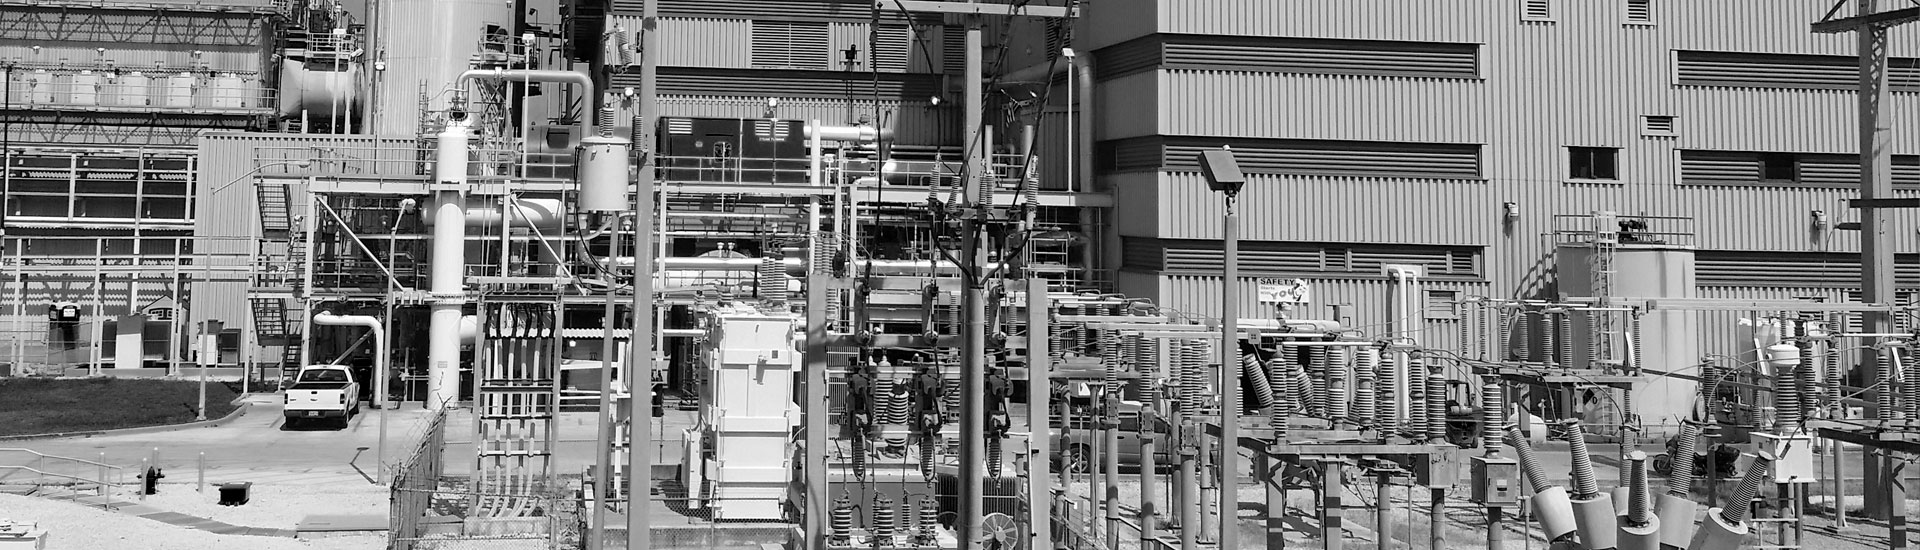 afcs-recycling-plant-bw